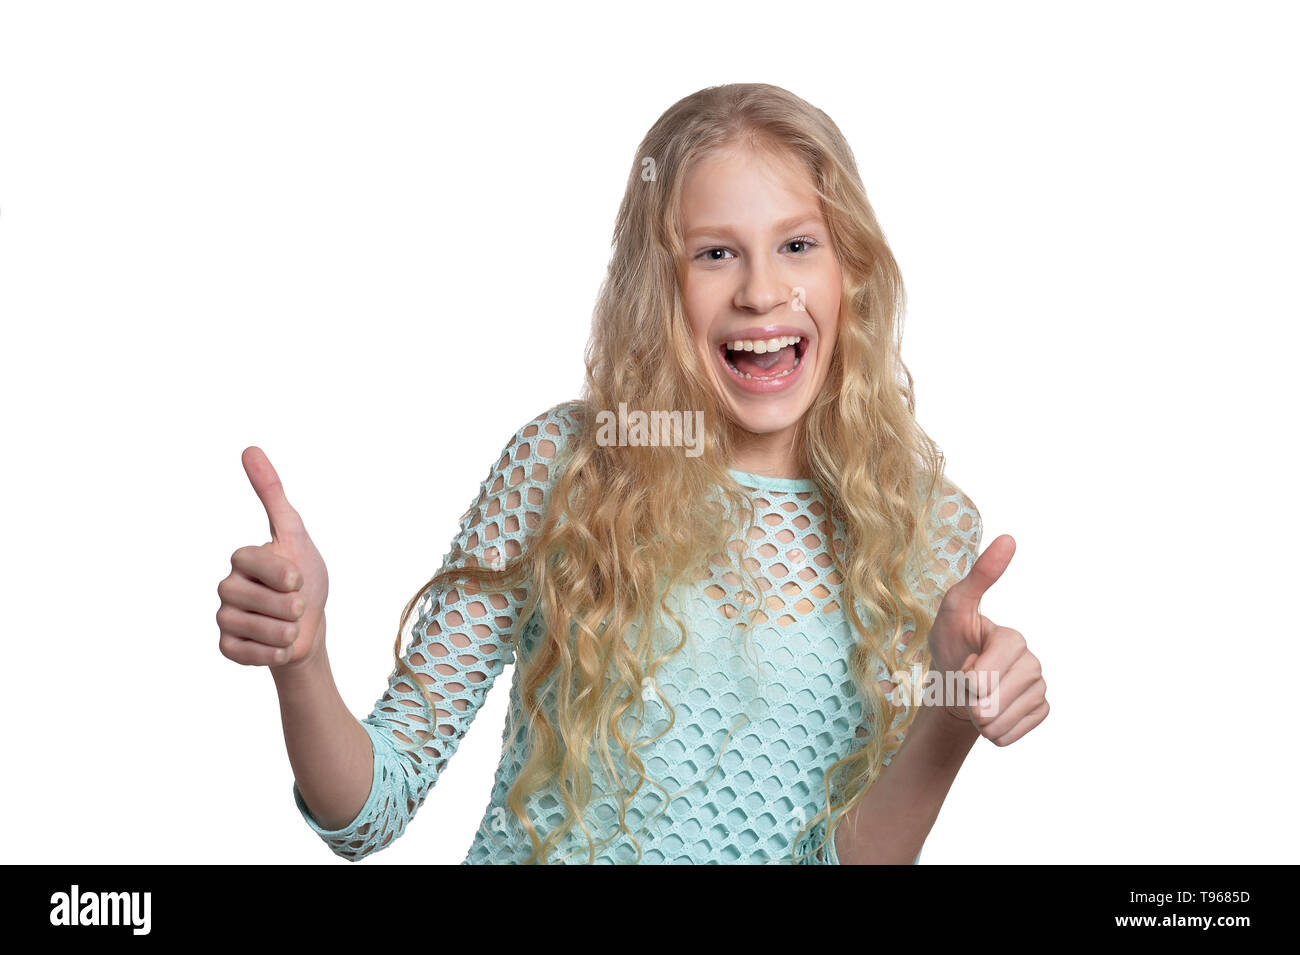 Portrait of cute blonde teen girl showing thumbs up  Stock Photo